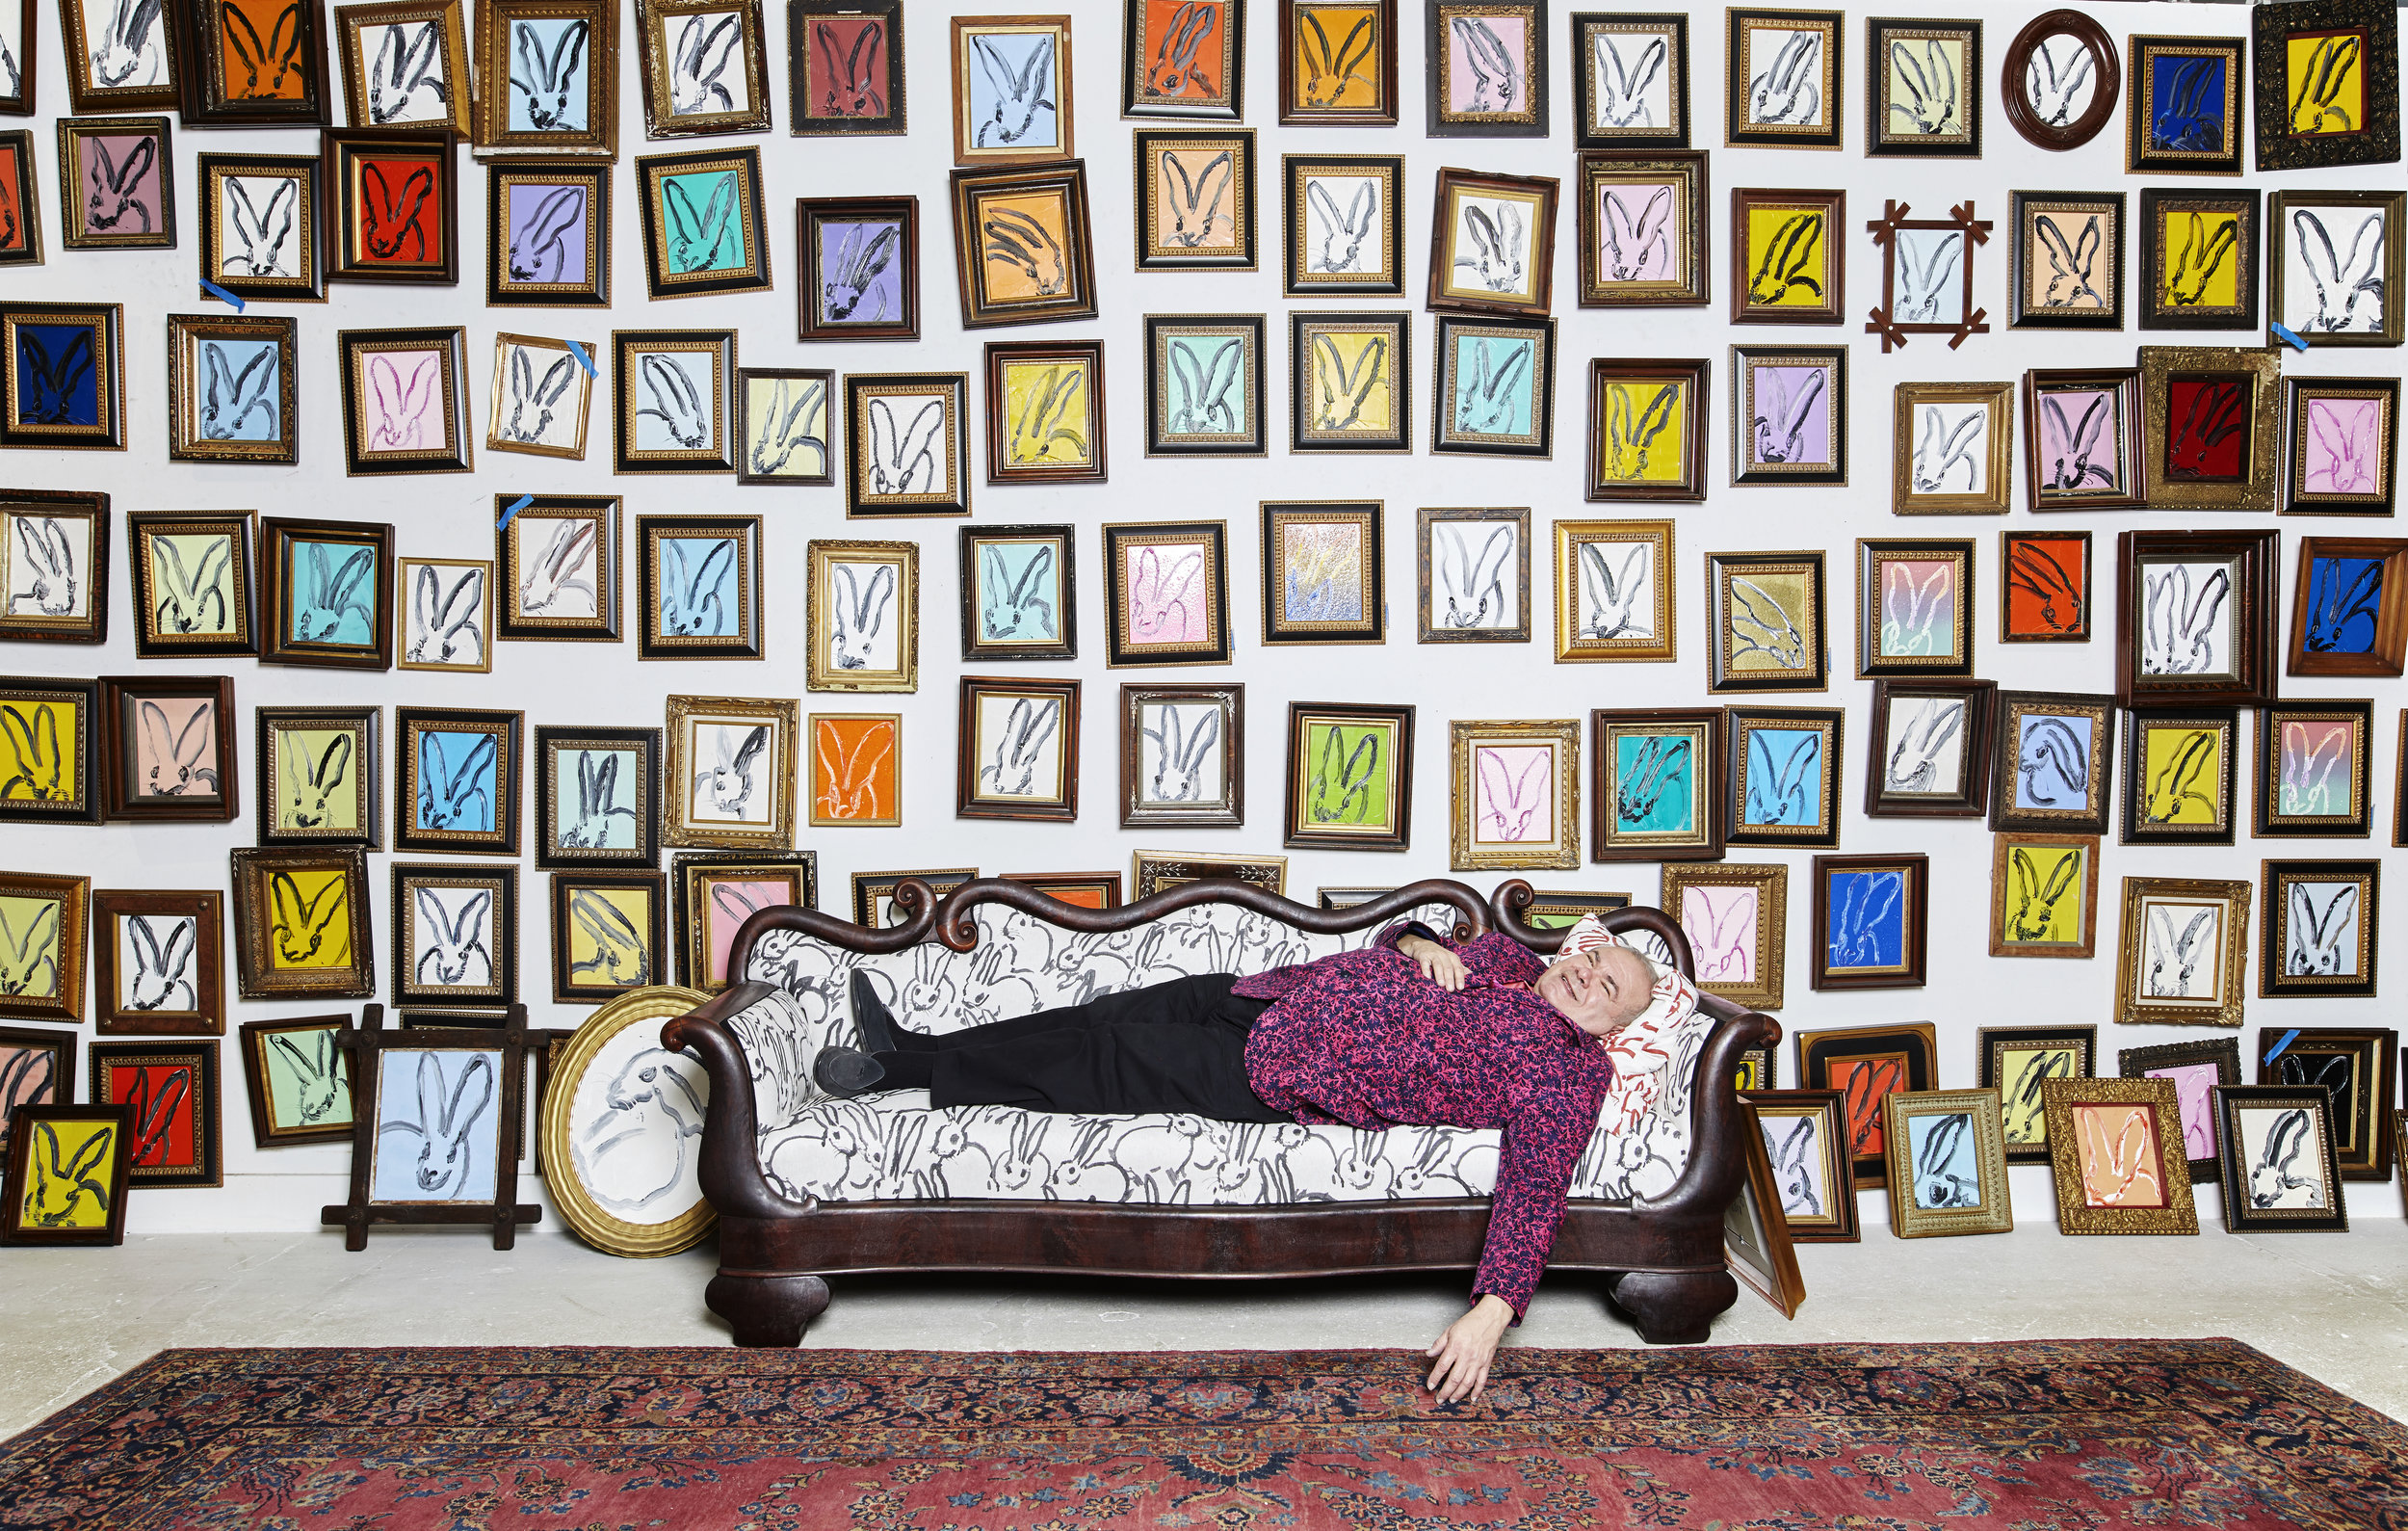 Portrait of Hunt Slonem in his studio, on his bunny couch in front of his Bunny Wall, Brooklyn, New York. Photograph by Brandon Schulman.